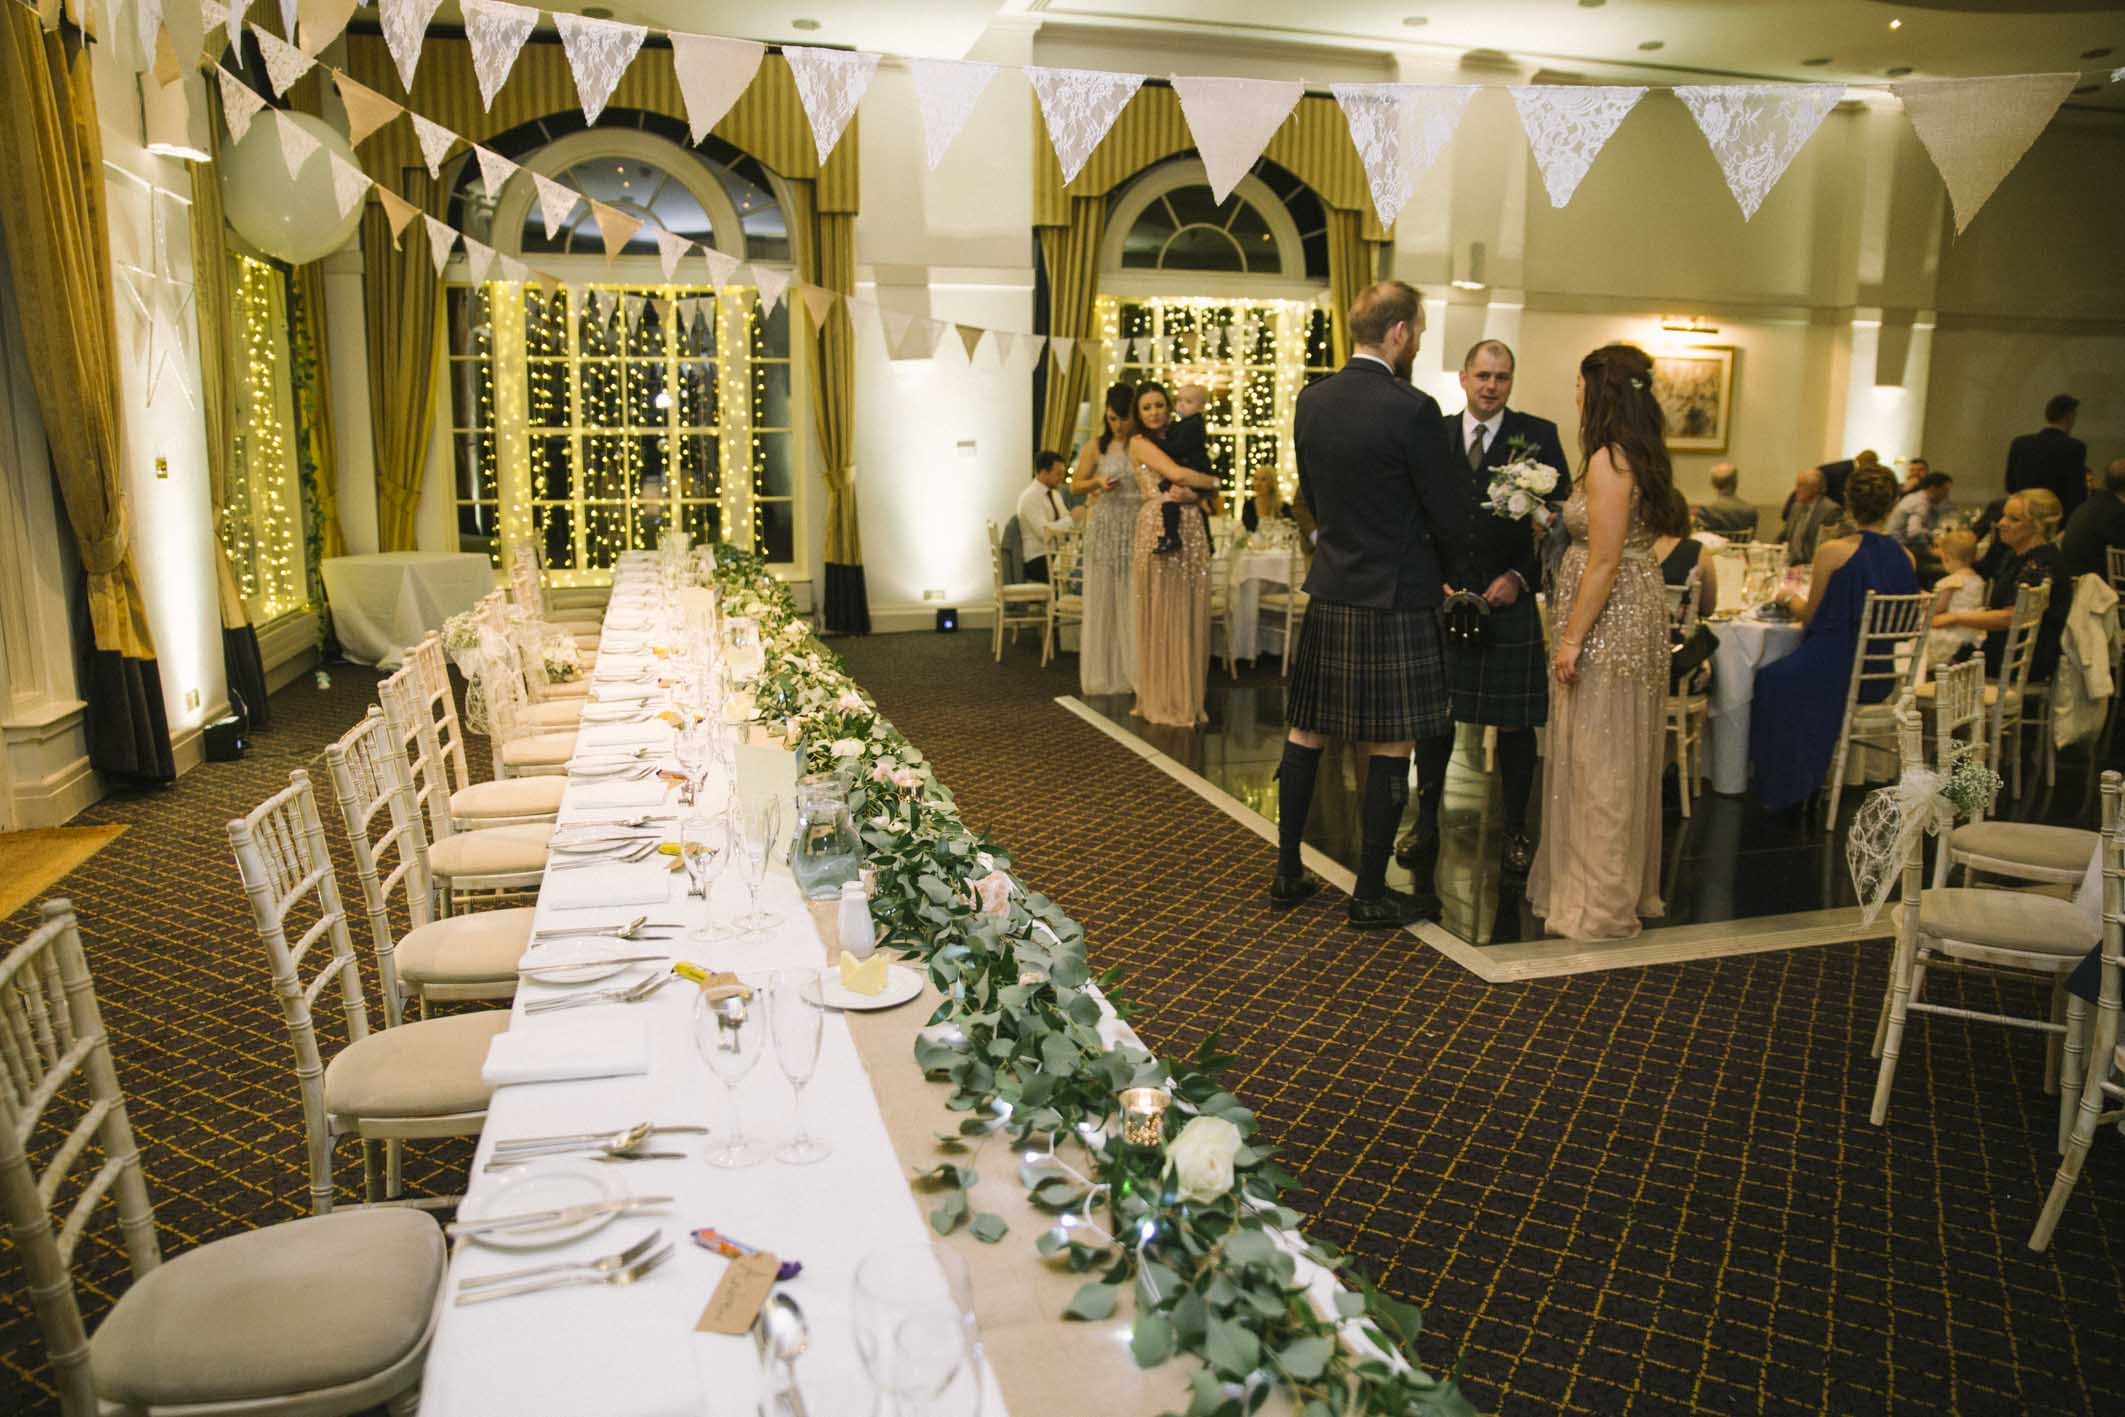 Reception at the Great Ballroom, Balbirnie House | Photo by Ceranna Photography